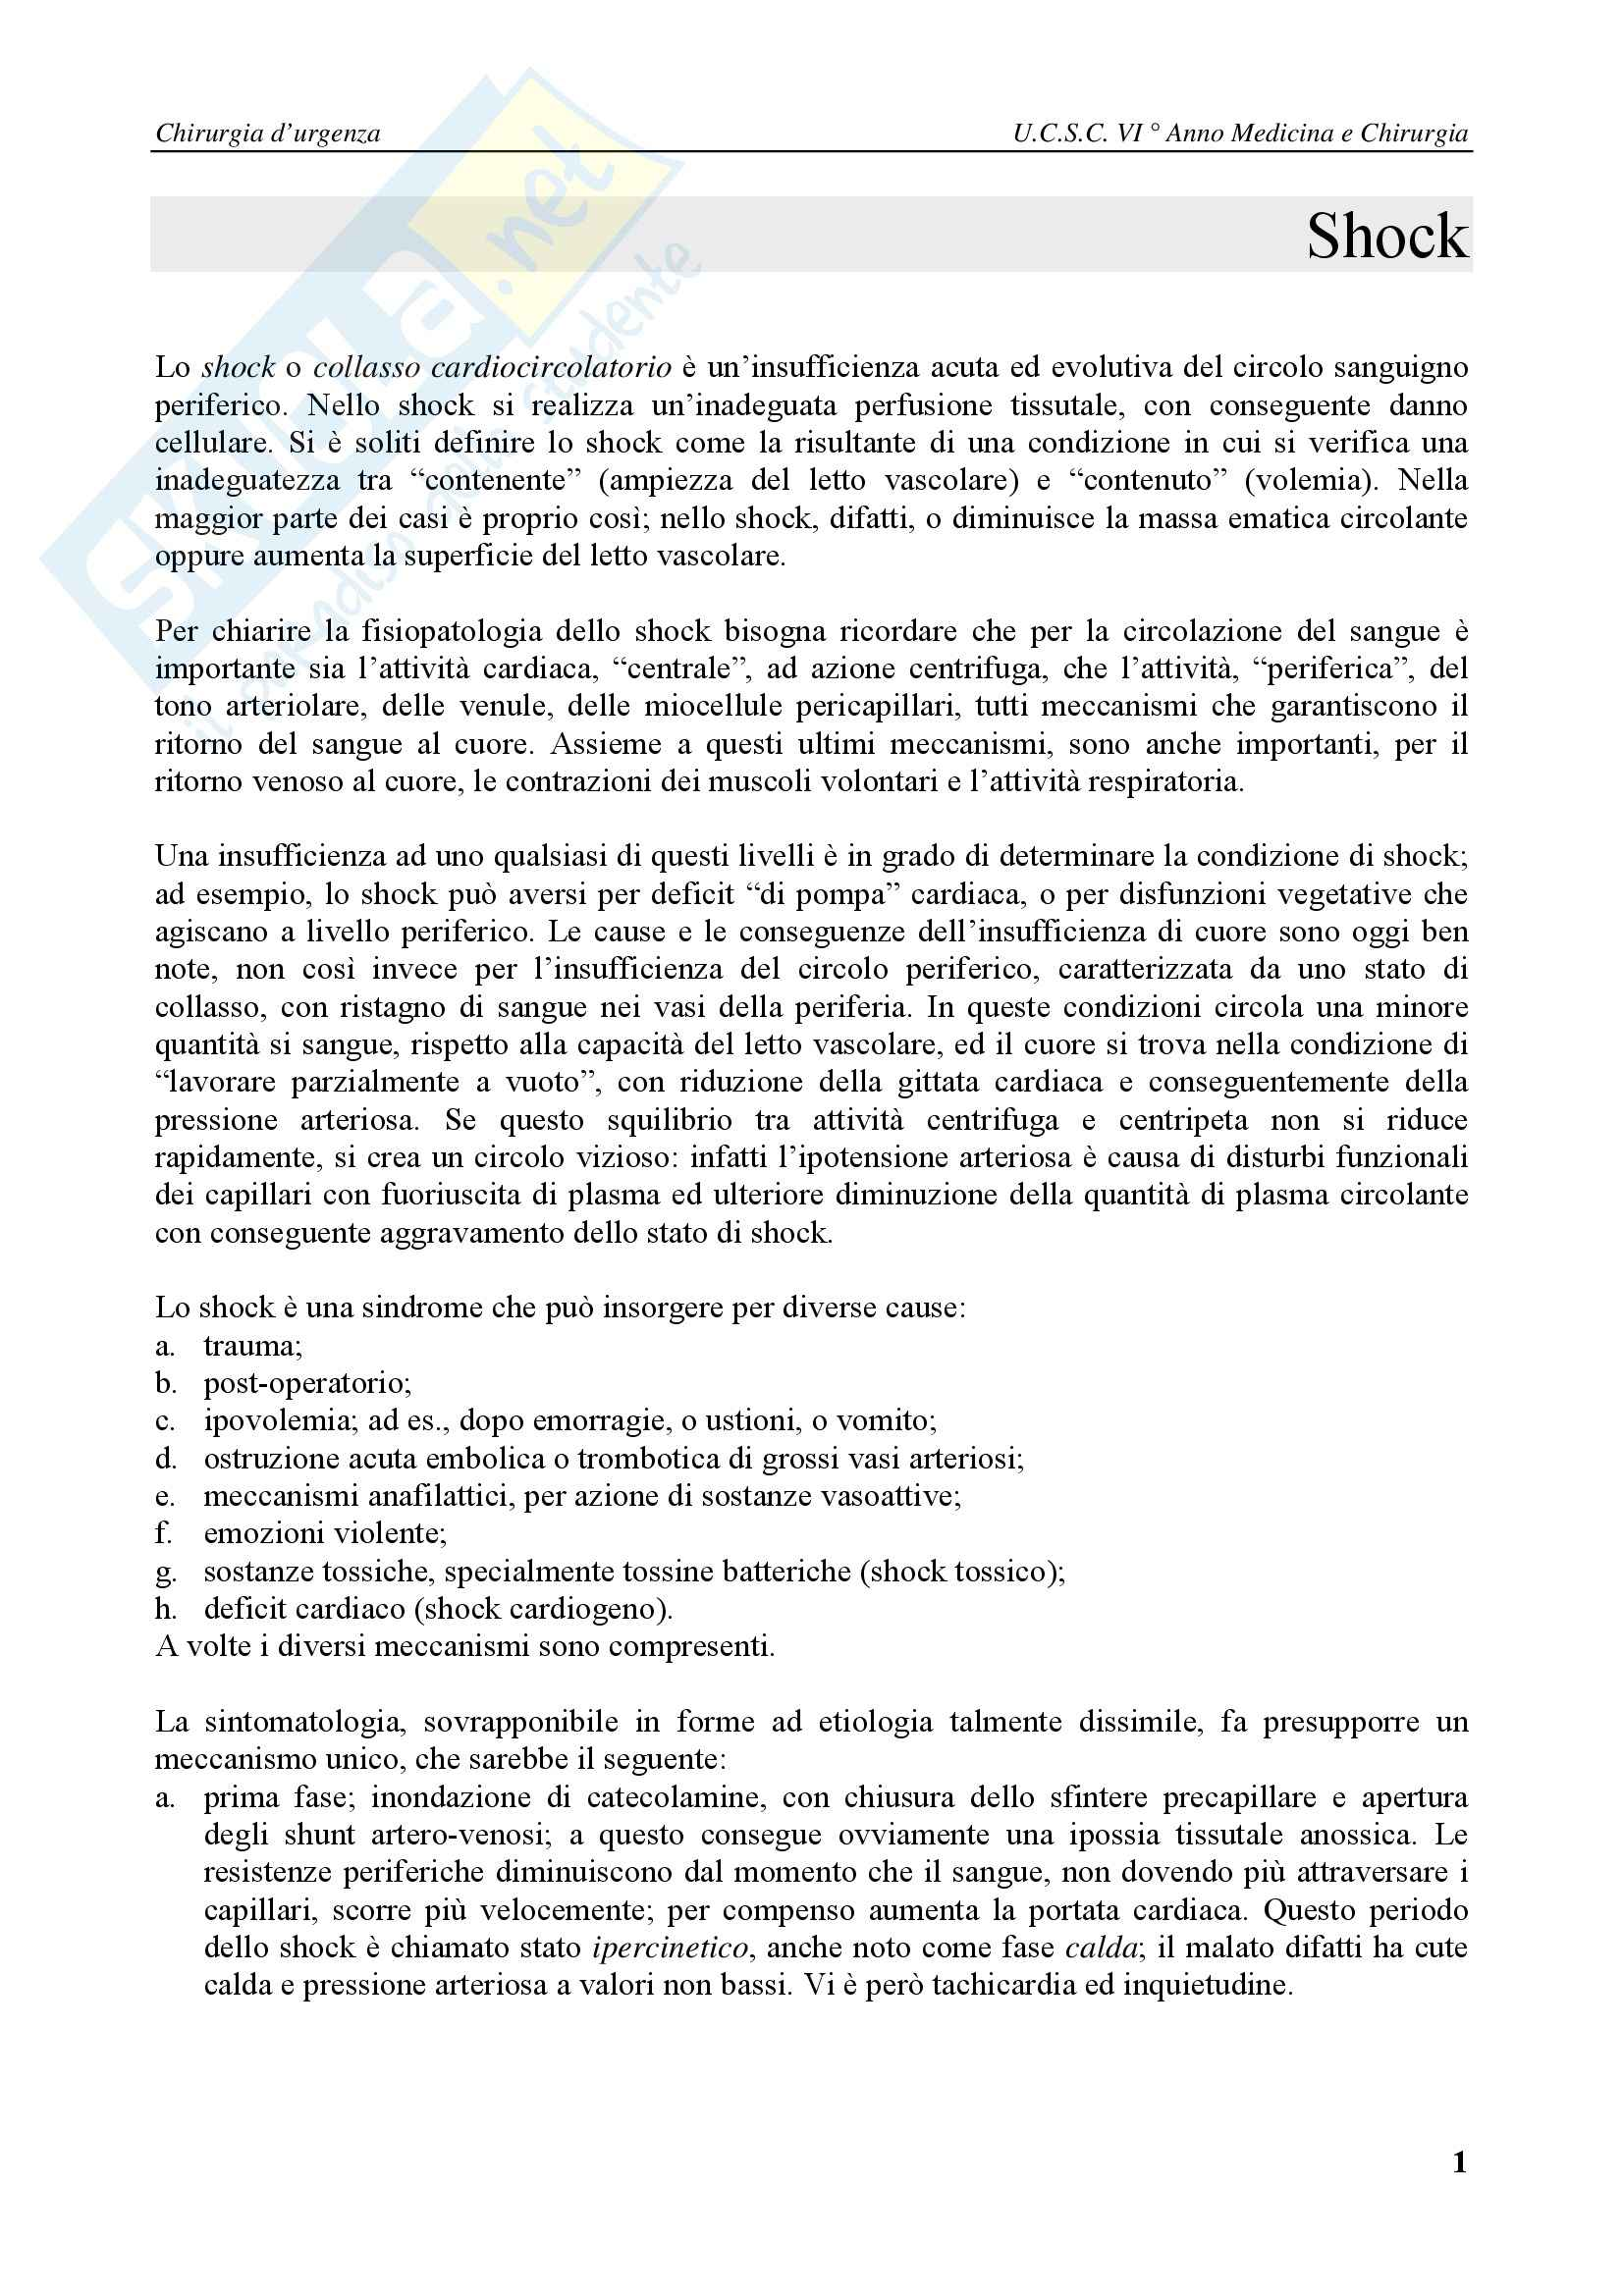 Chirurgia generale - chirurgia d'urgenza Pag. 1